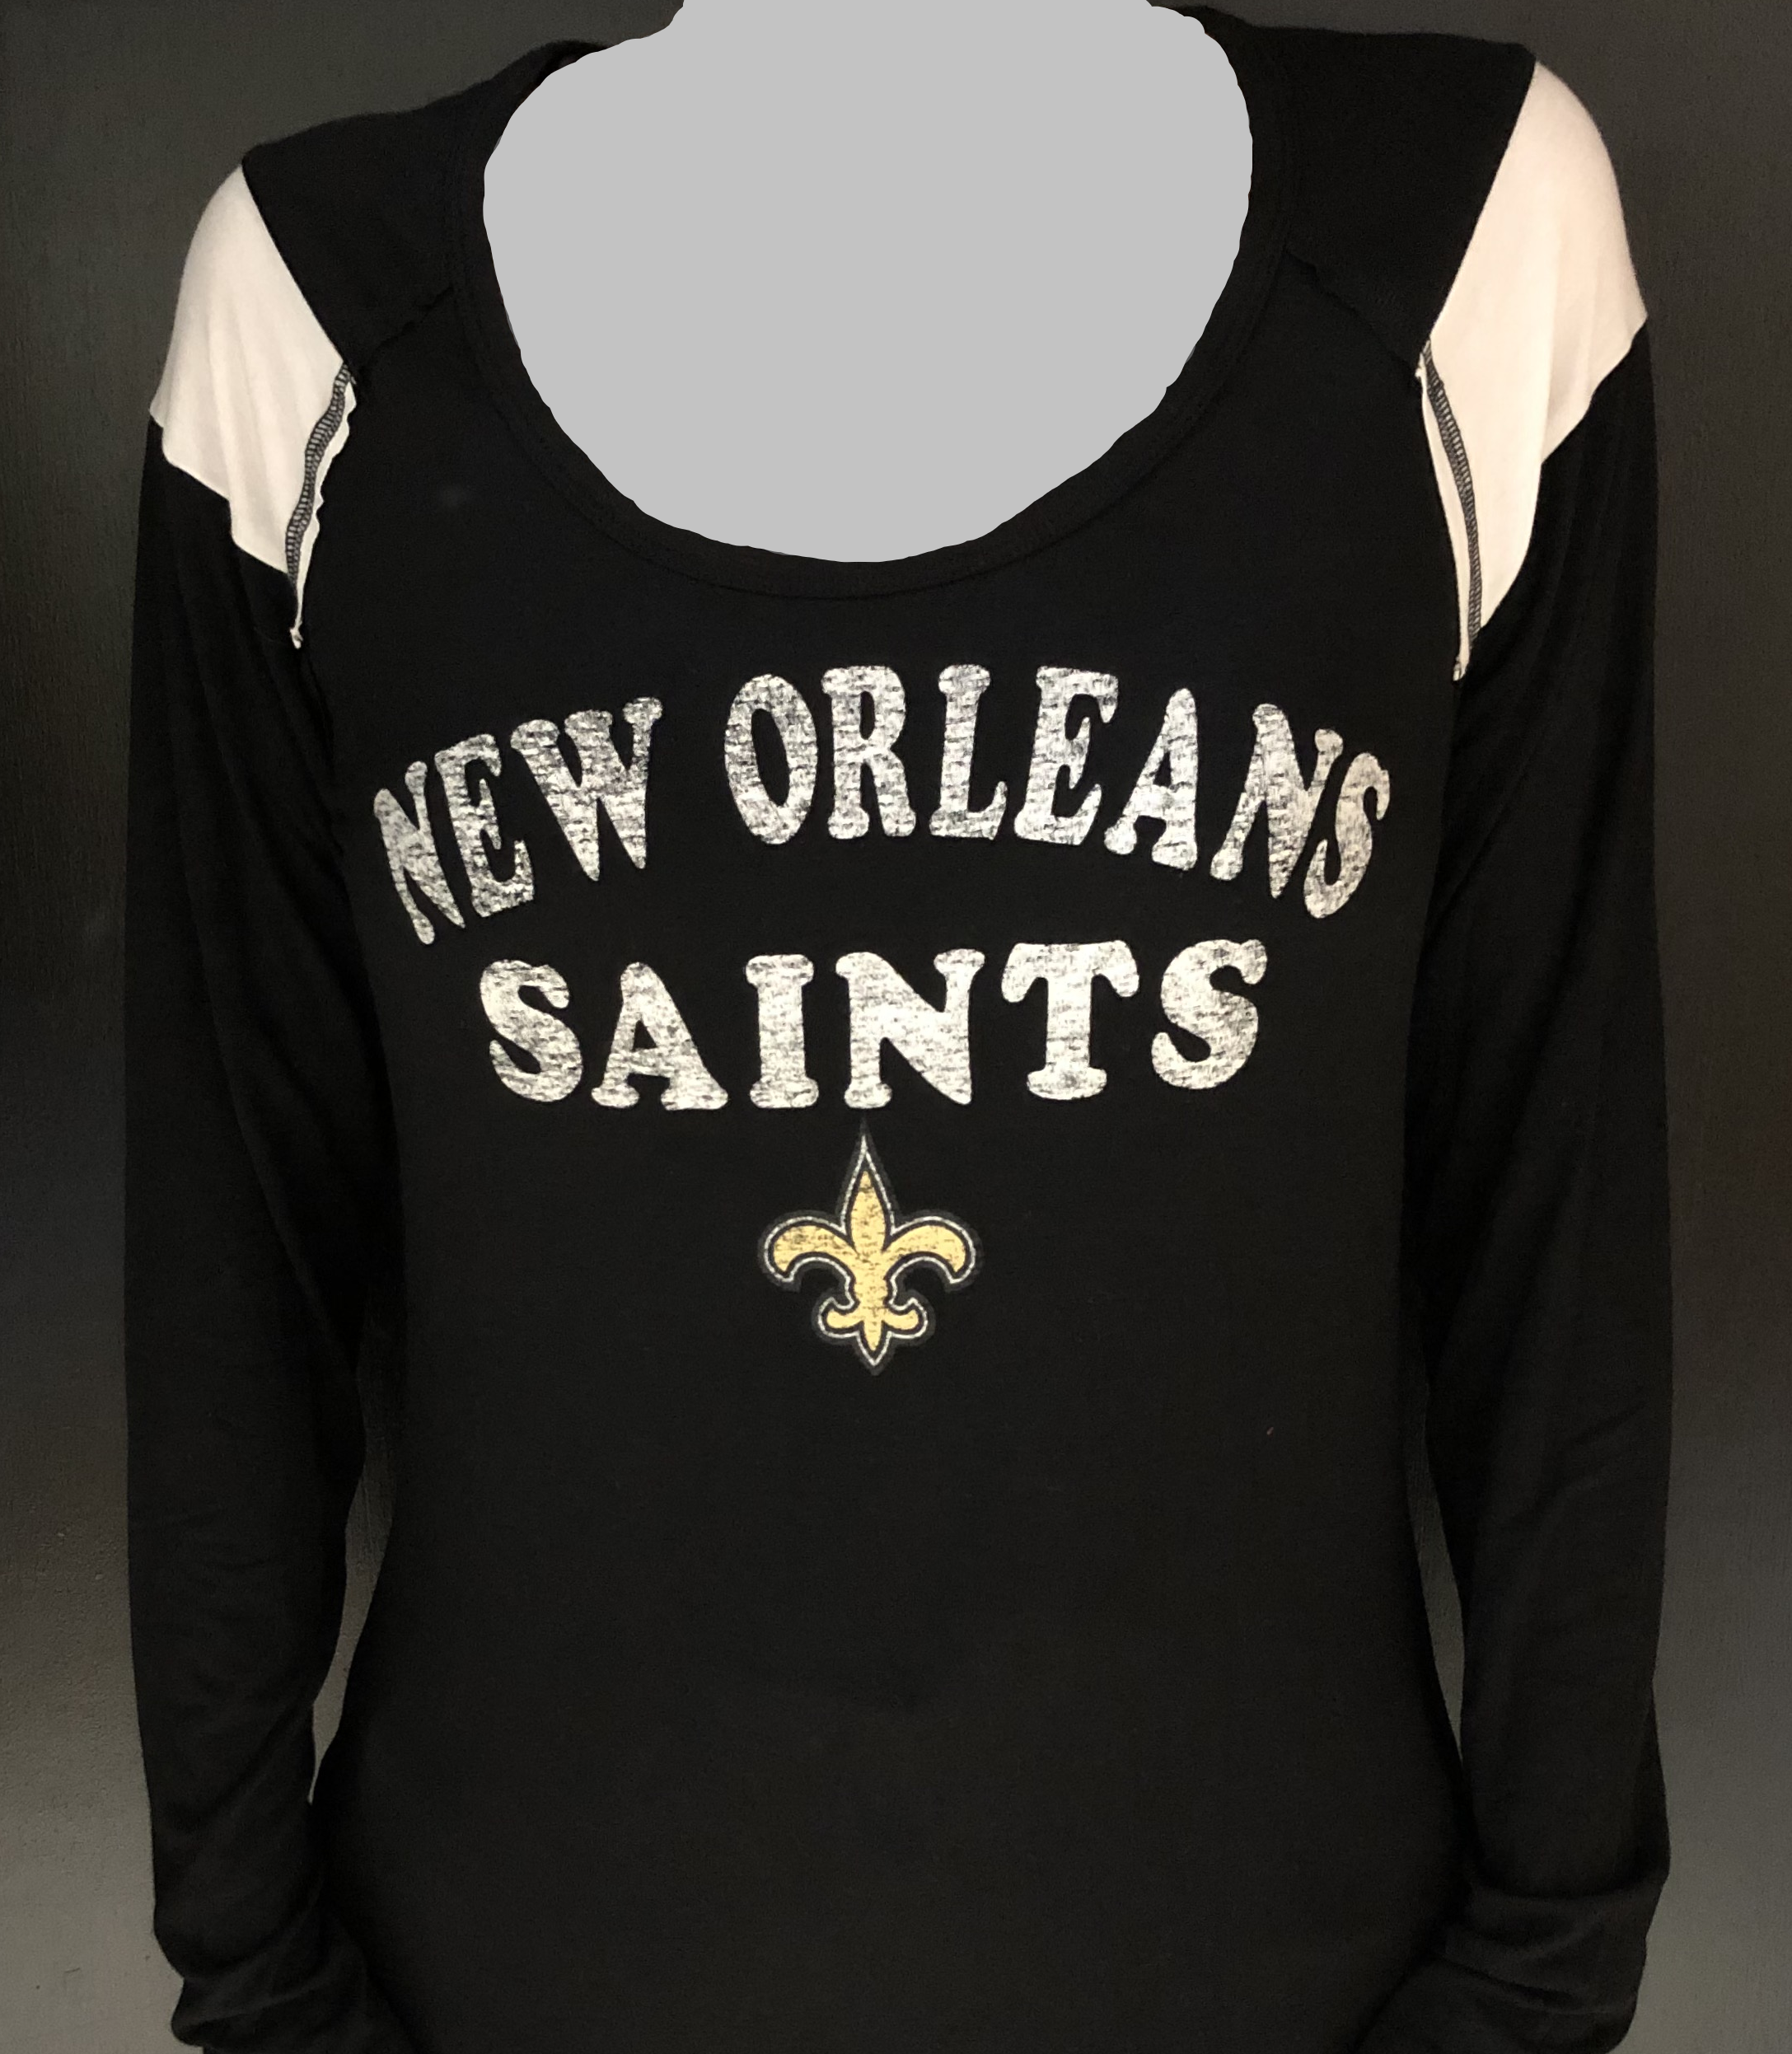 New Orleans Saints Shirt - Distressed Long Sleeve